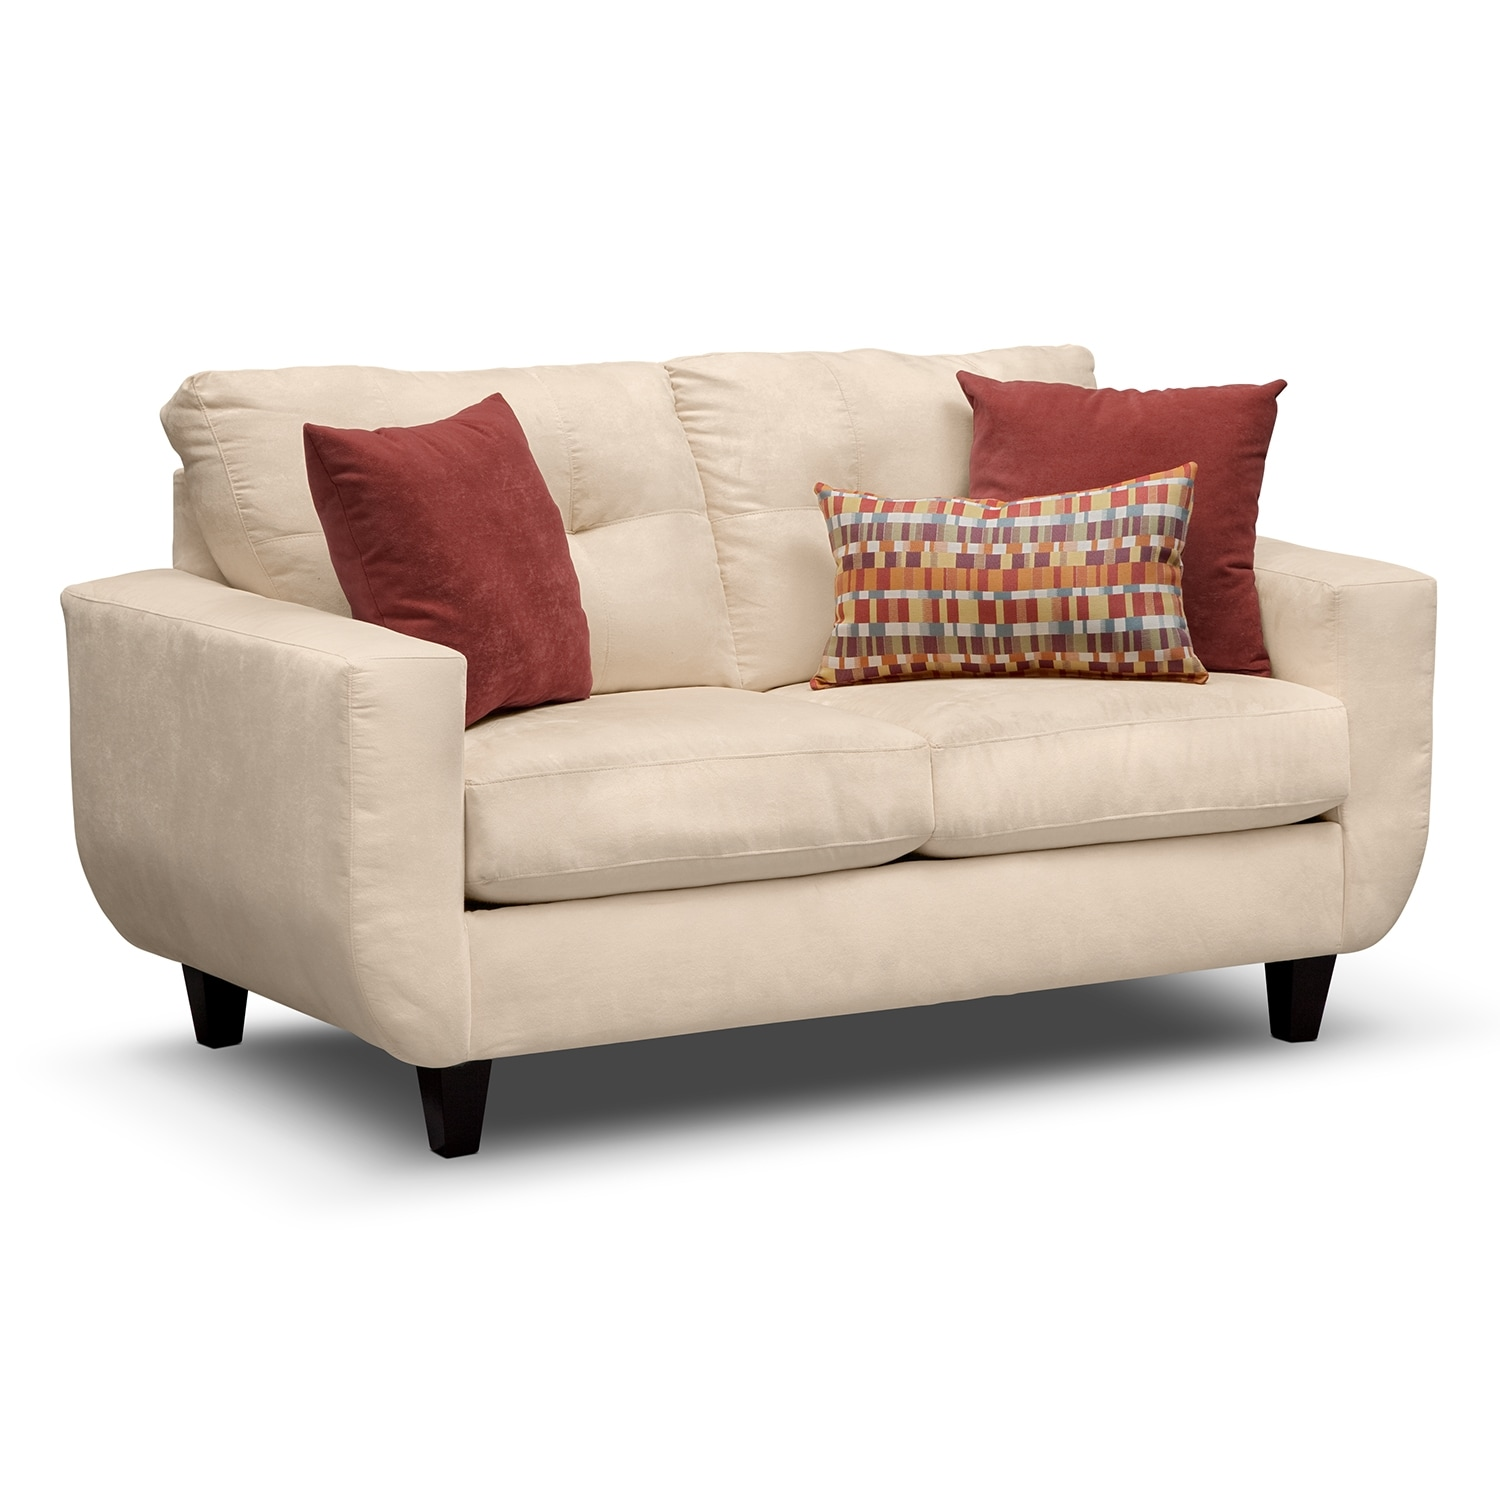 West Village Loveseat - Cream